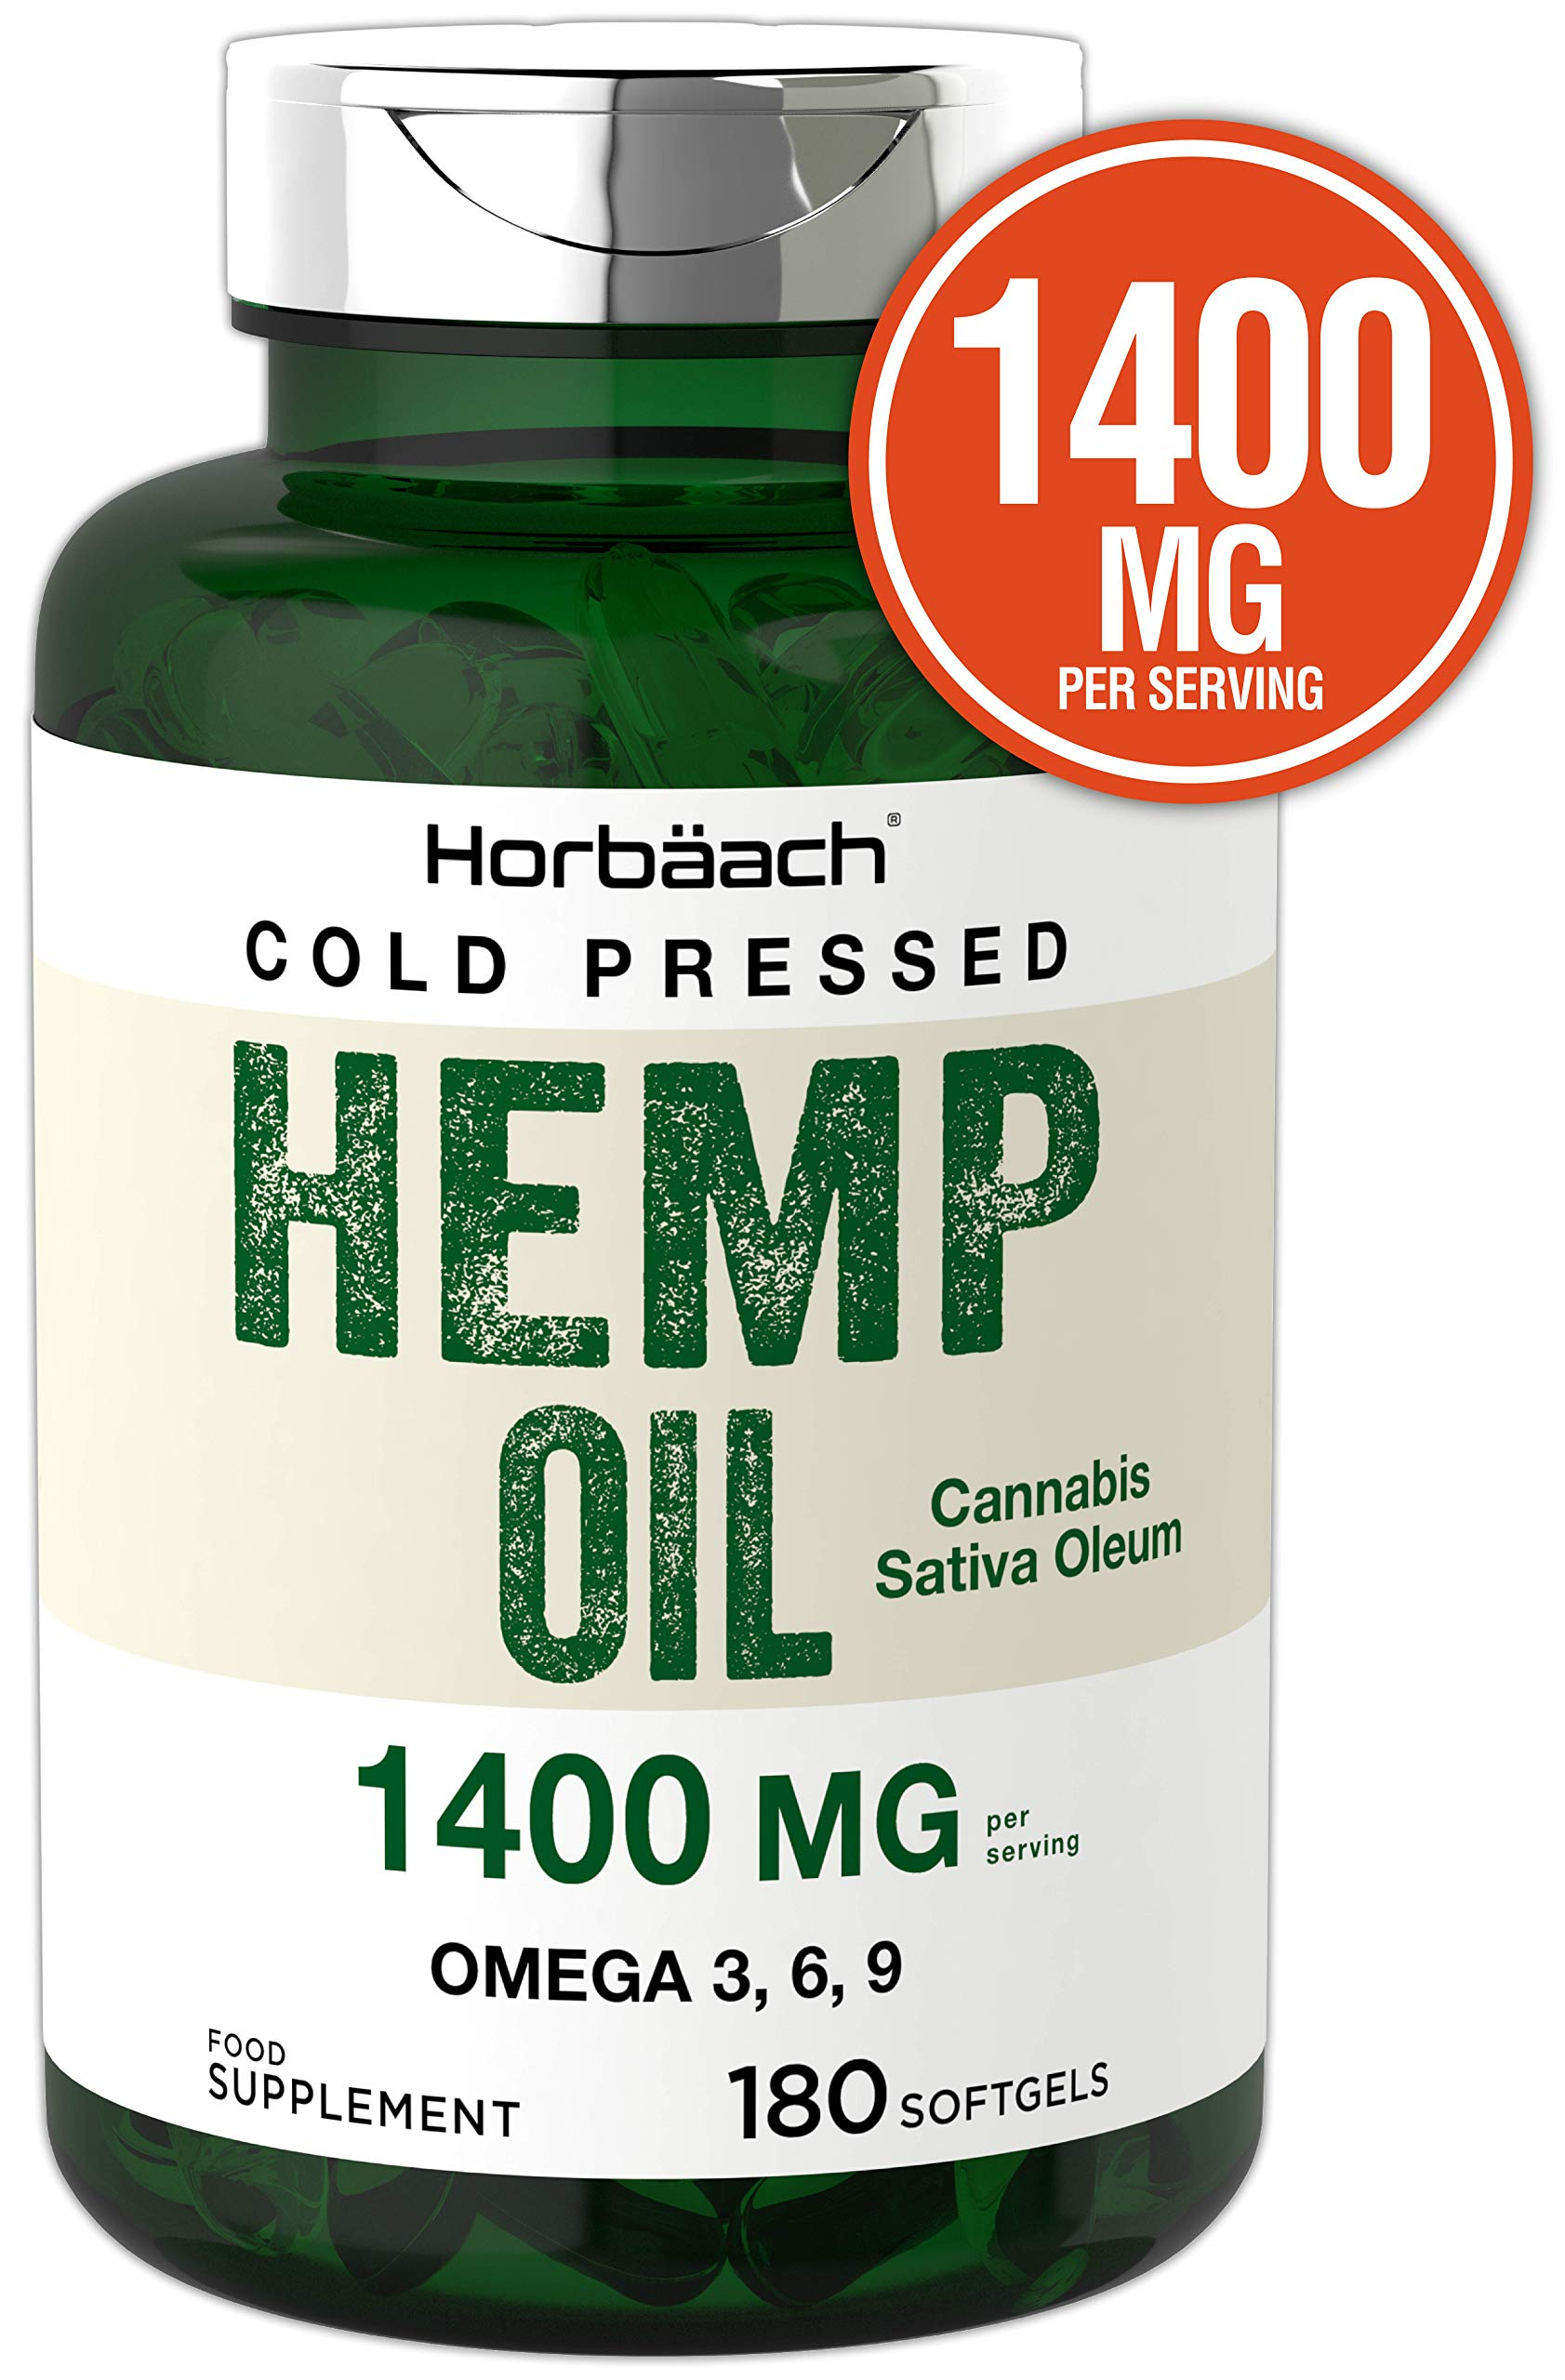 Hemp Seed Oil Capsules 1400 mg 180 Softgels | High Strength | Cold Pressed | Natural Source of Omega 3, 6, and 9 | by Horbaach